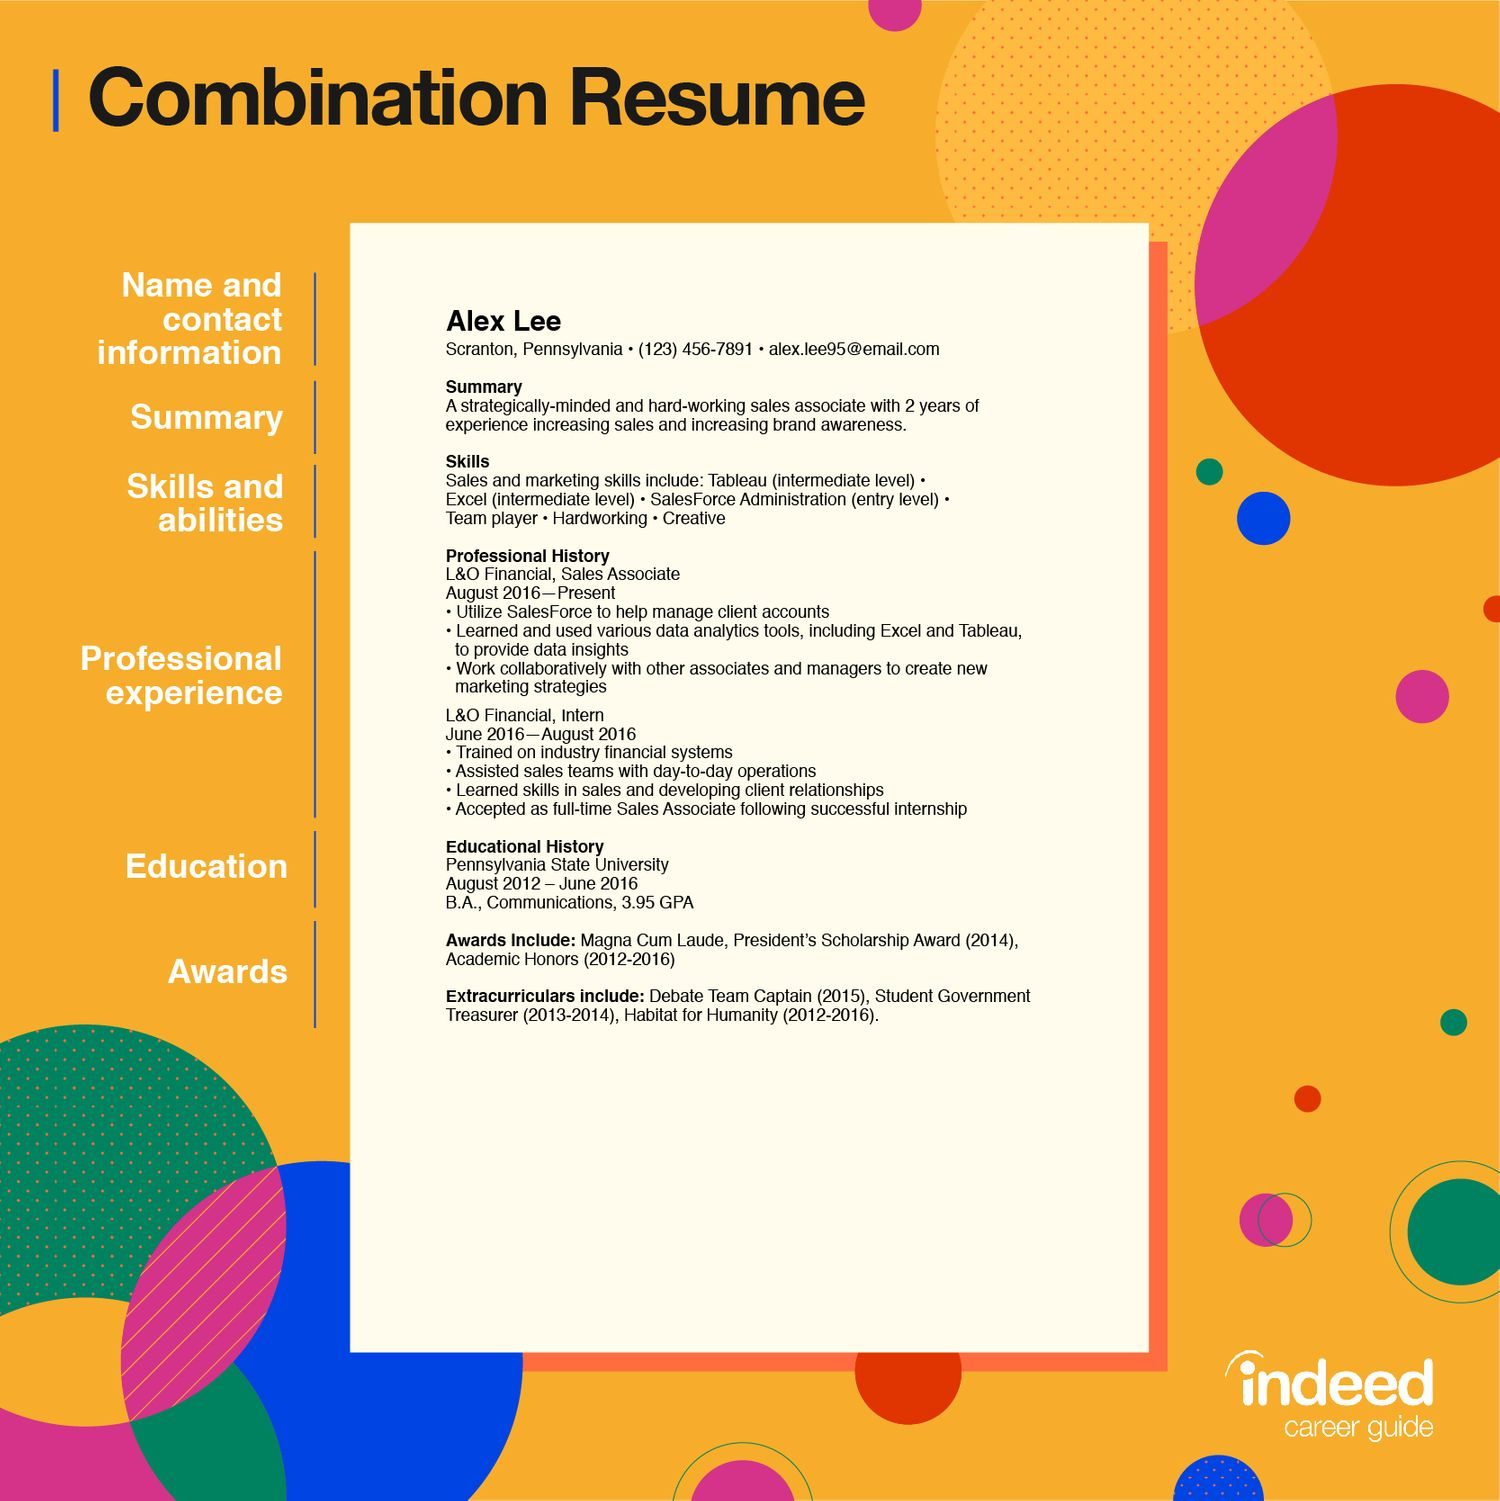 combination resume tips and examples indeedcom simple objective in sample resized Resume Simple Objective In Resume Sample